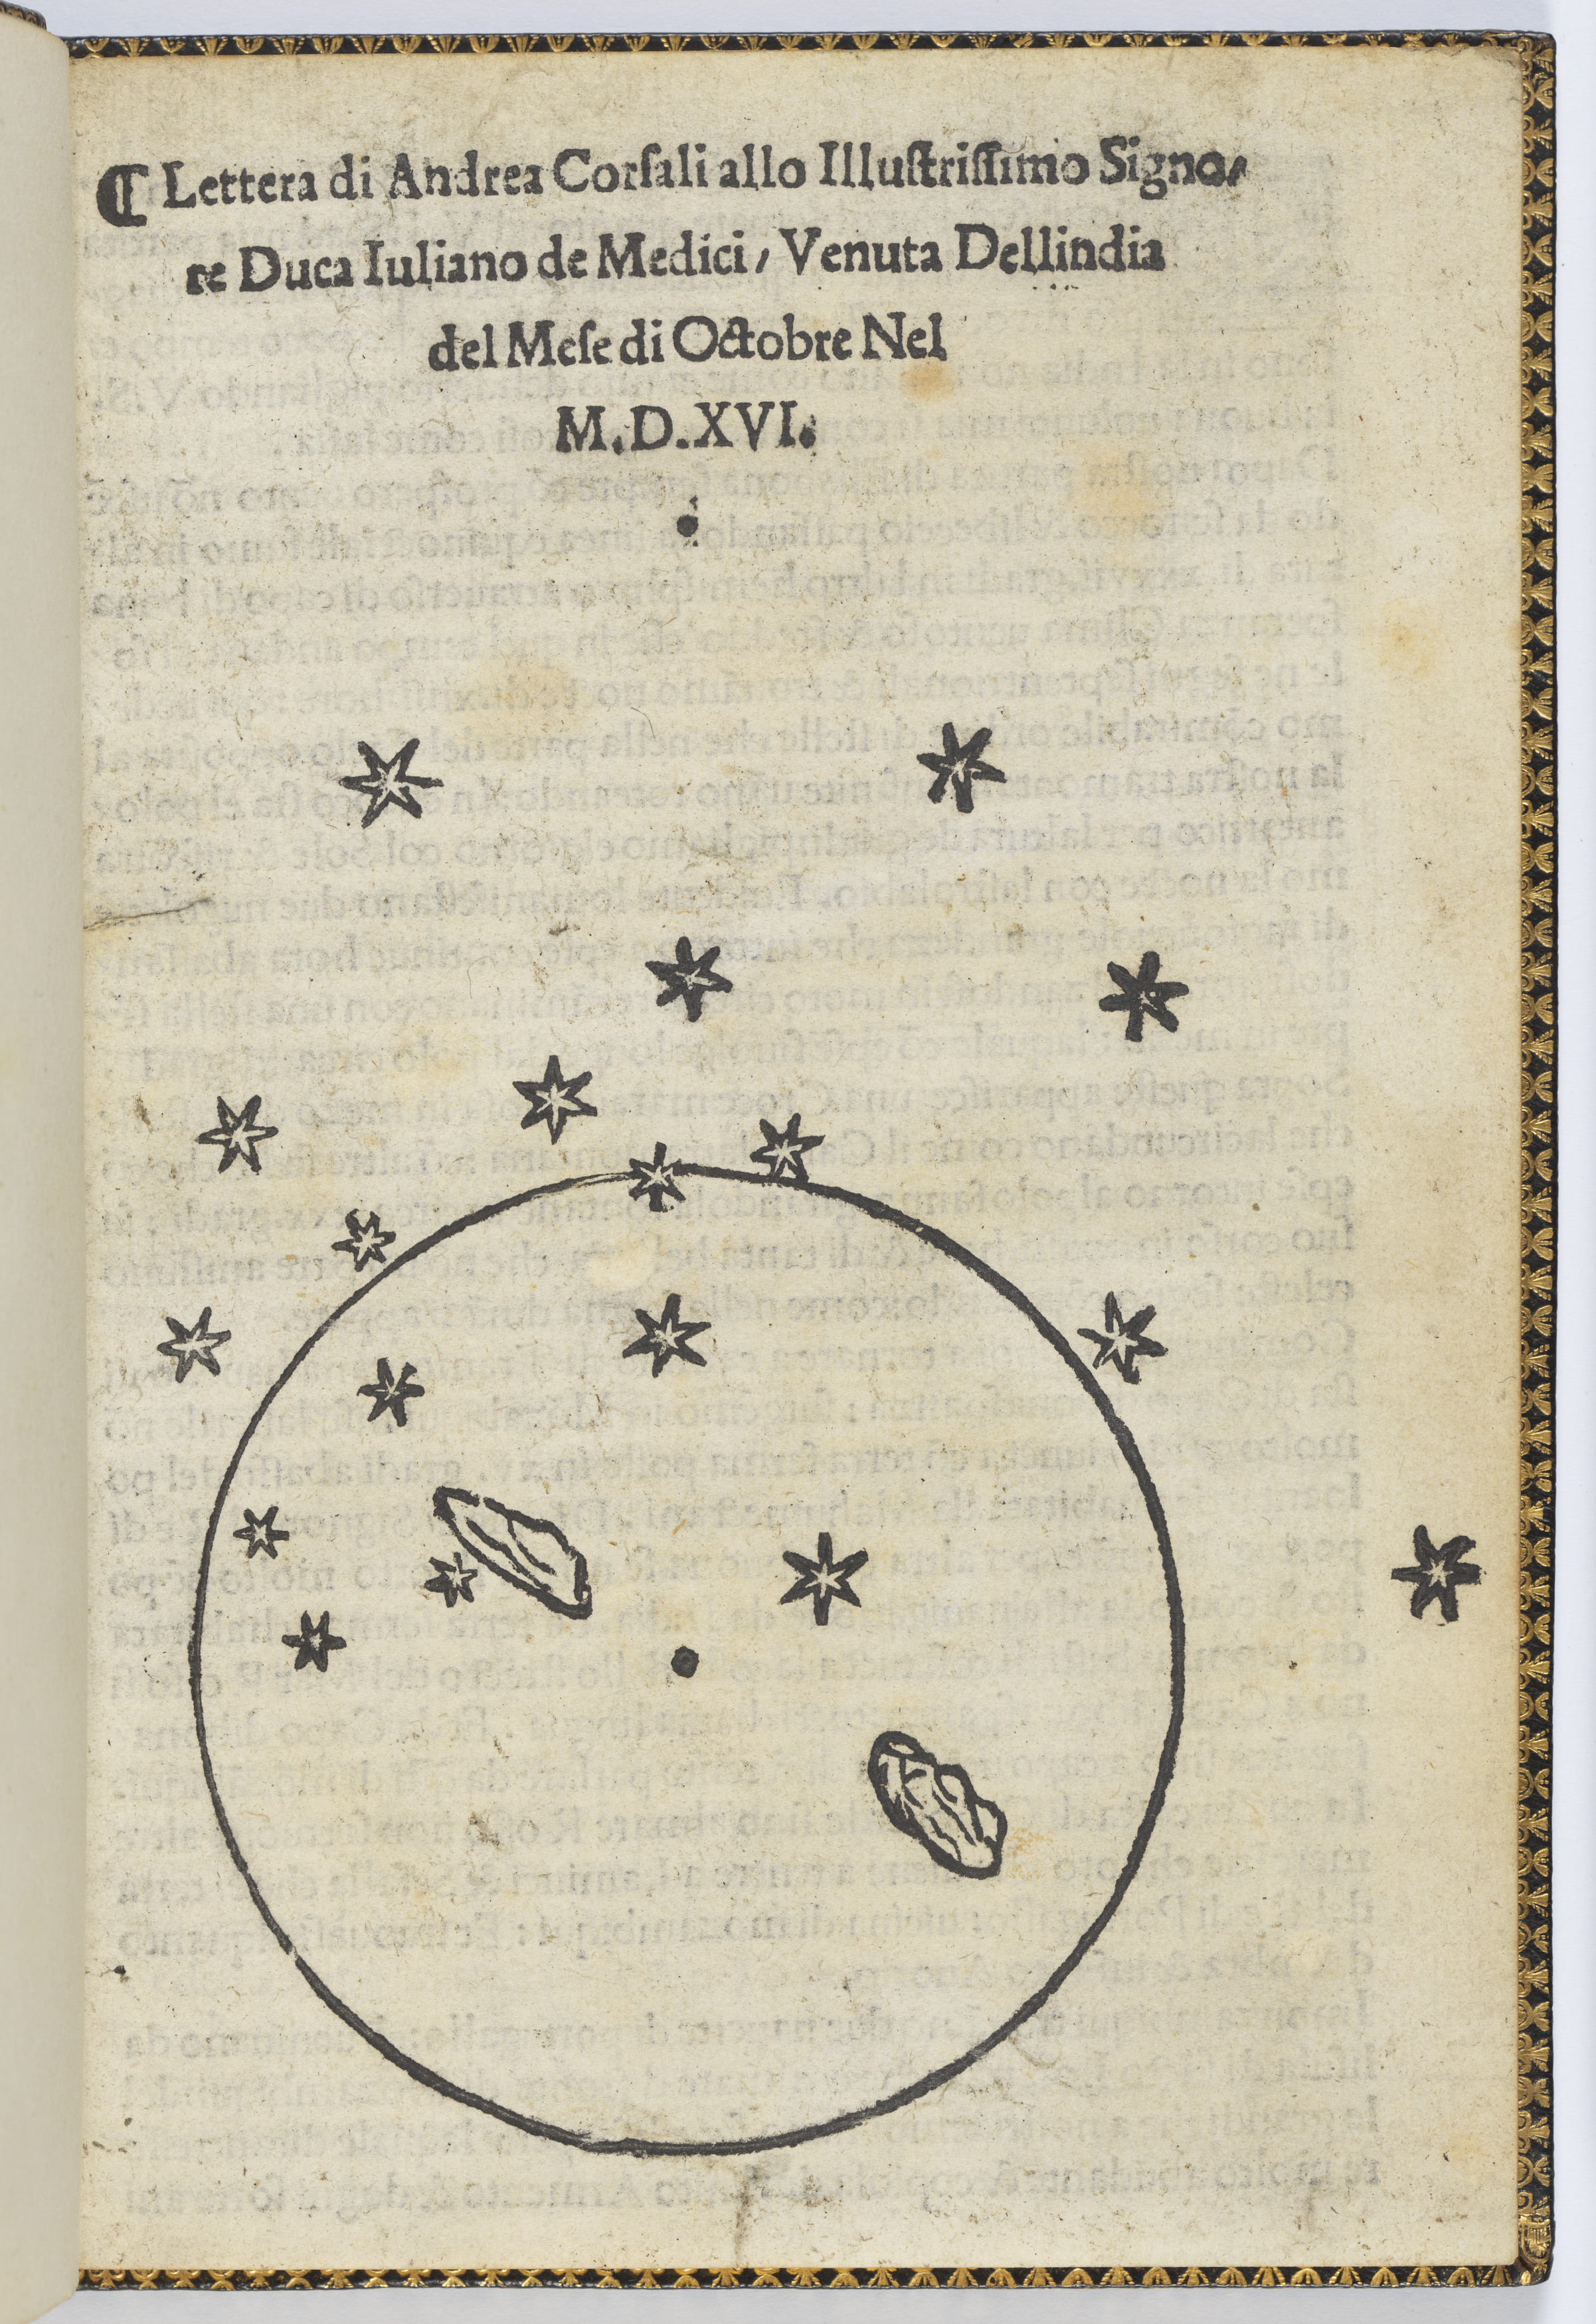 Page of an old book showing a sketch of a planet with constellation of stars.